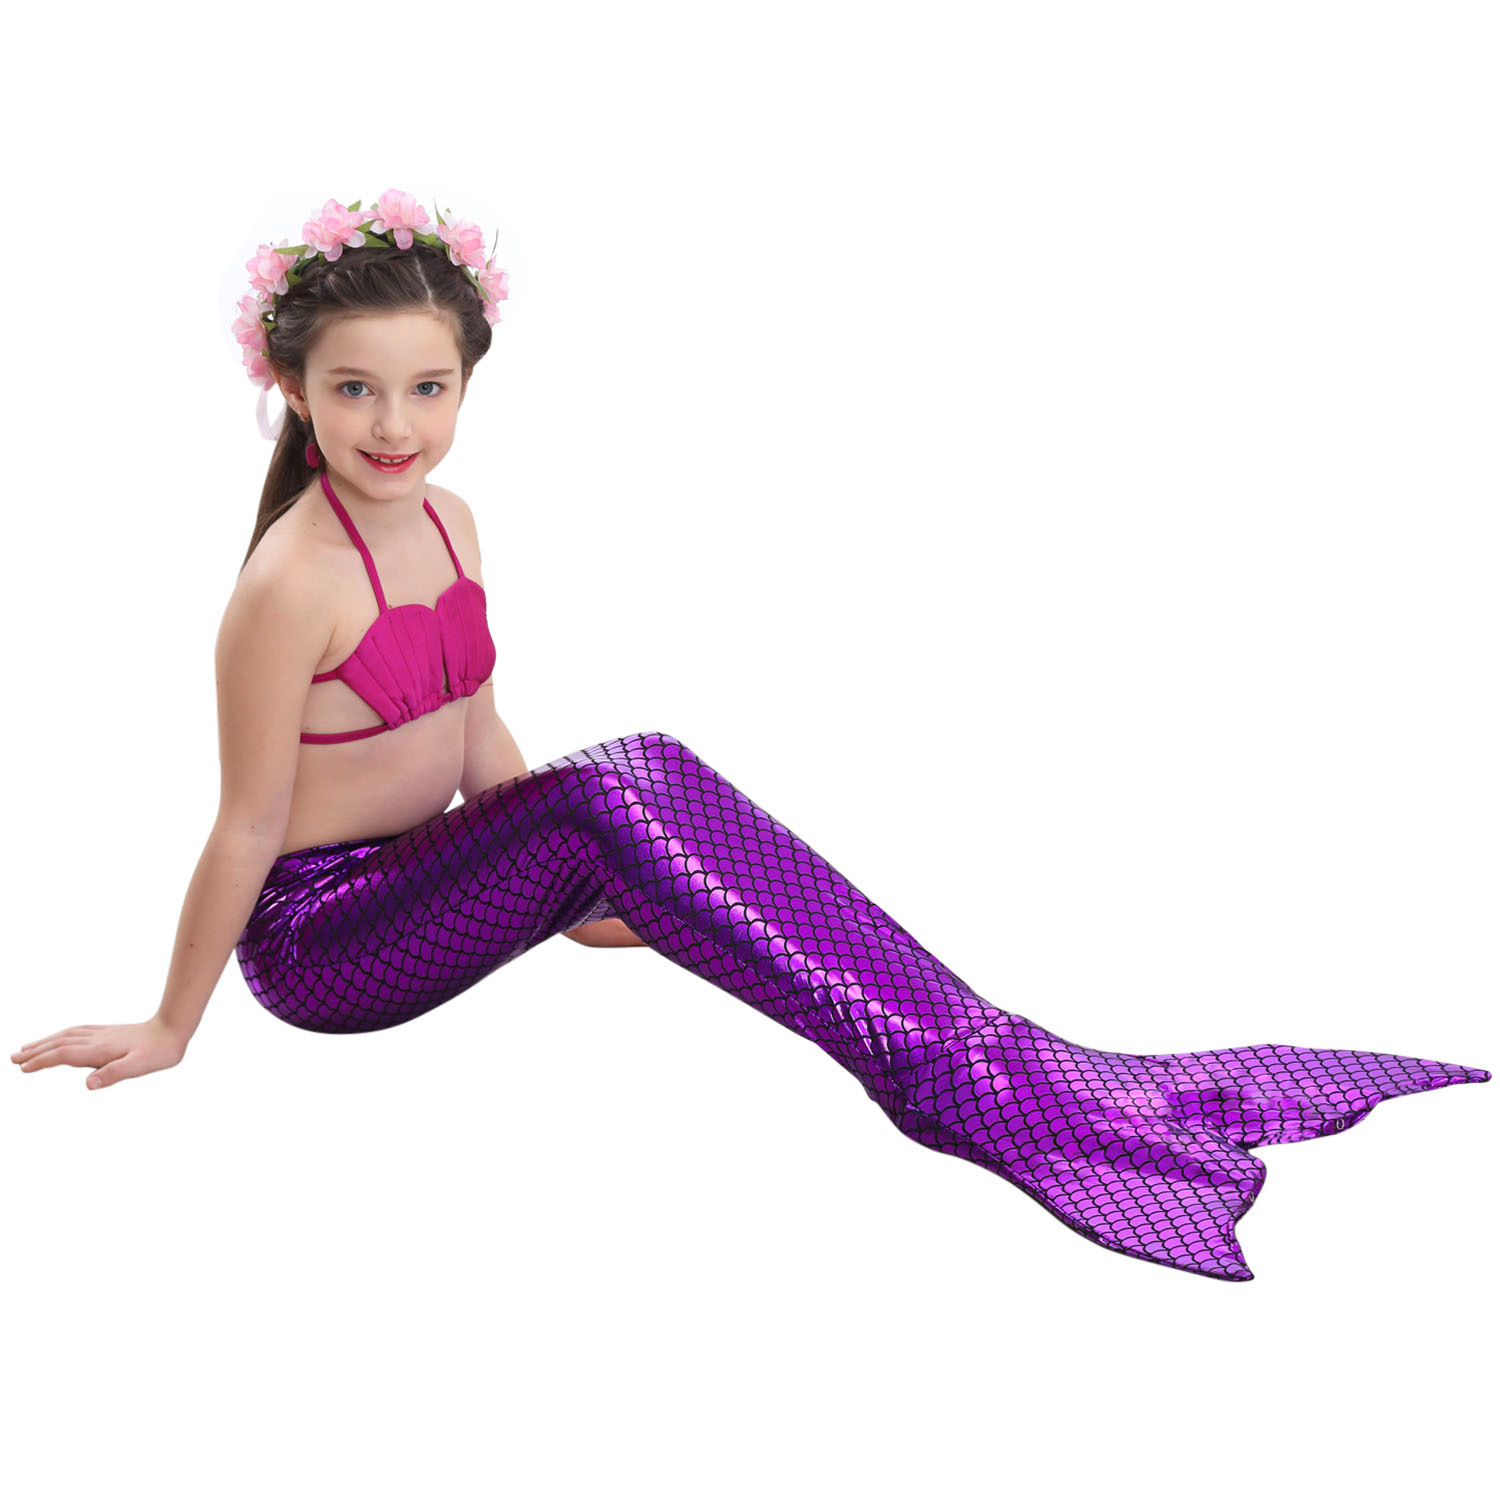 Little Mermaid Tails for Swimming Costume Mermaid Tail Cosplay Girls Swimsuit Kids Children Swimmable suit Monofin 2